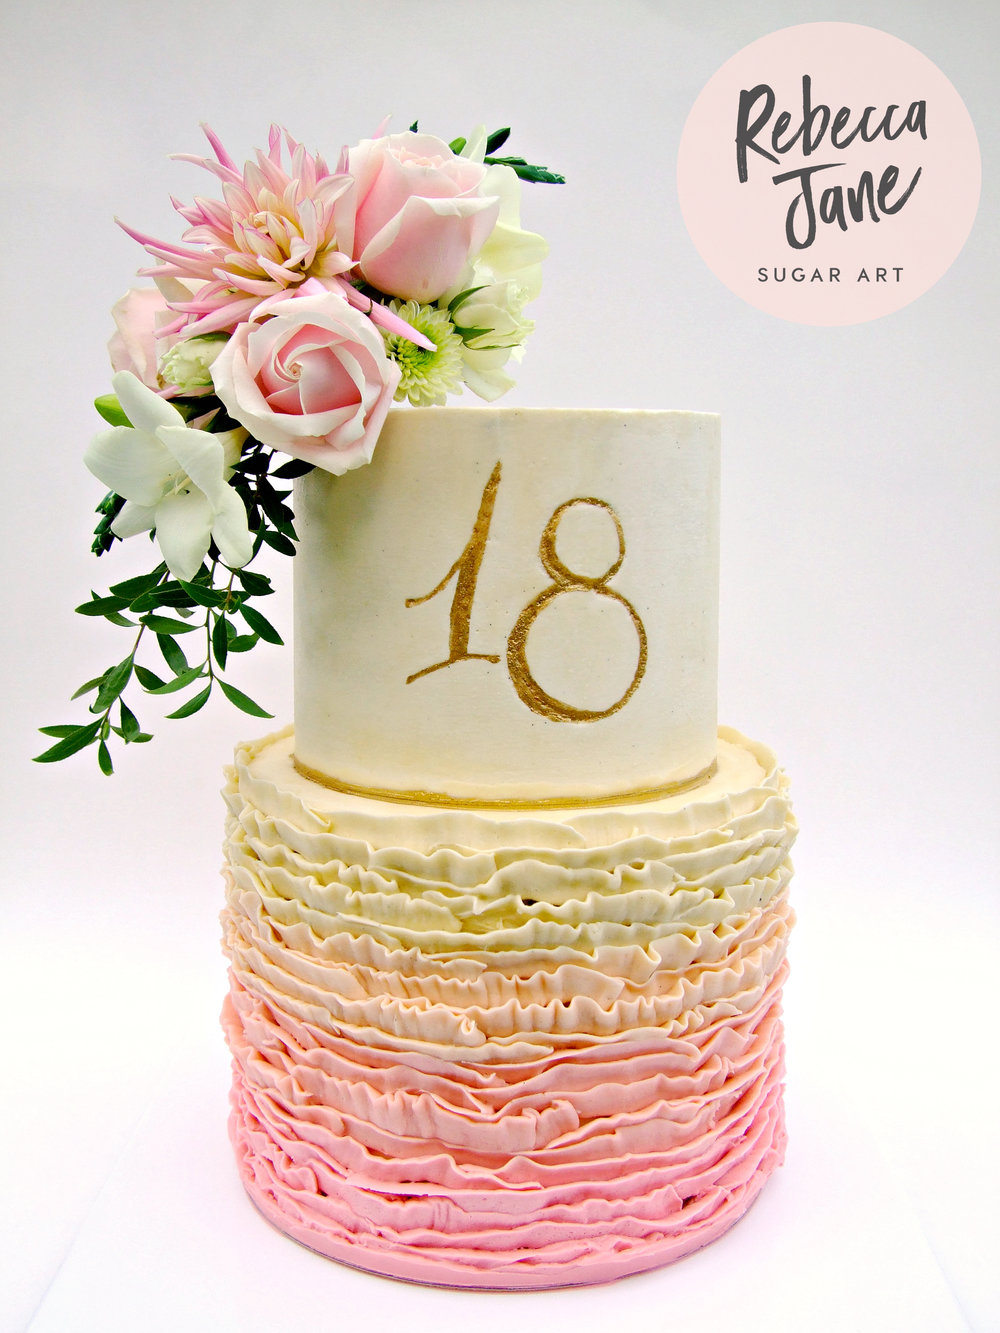 Rebecca Jane Sugar Art - white and pink buttercream floral cake